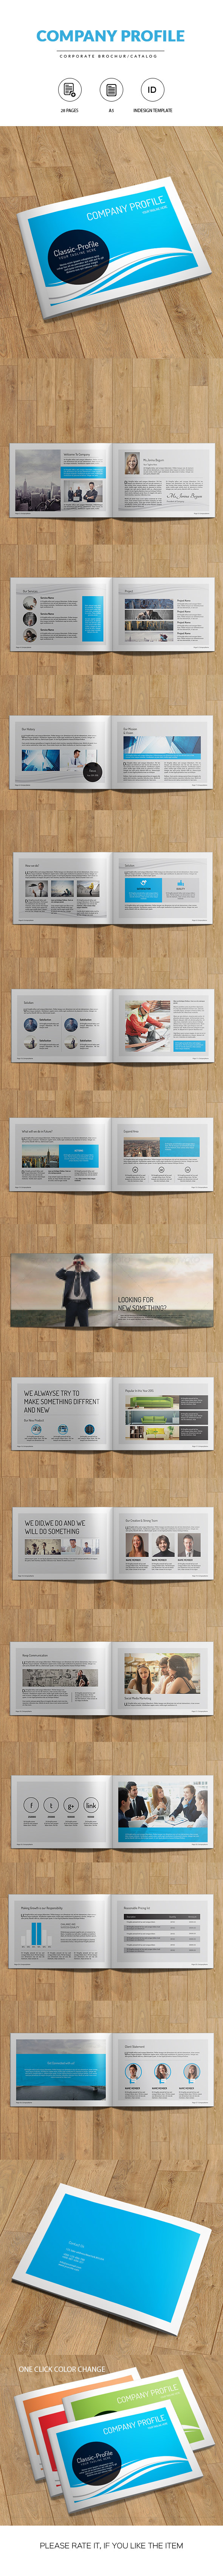 Company Profile A5 Indesign Brochure On Behance